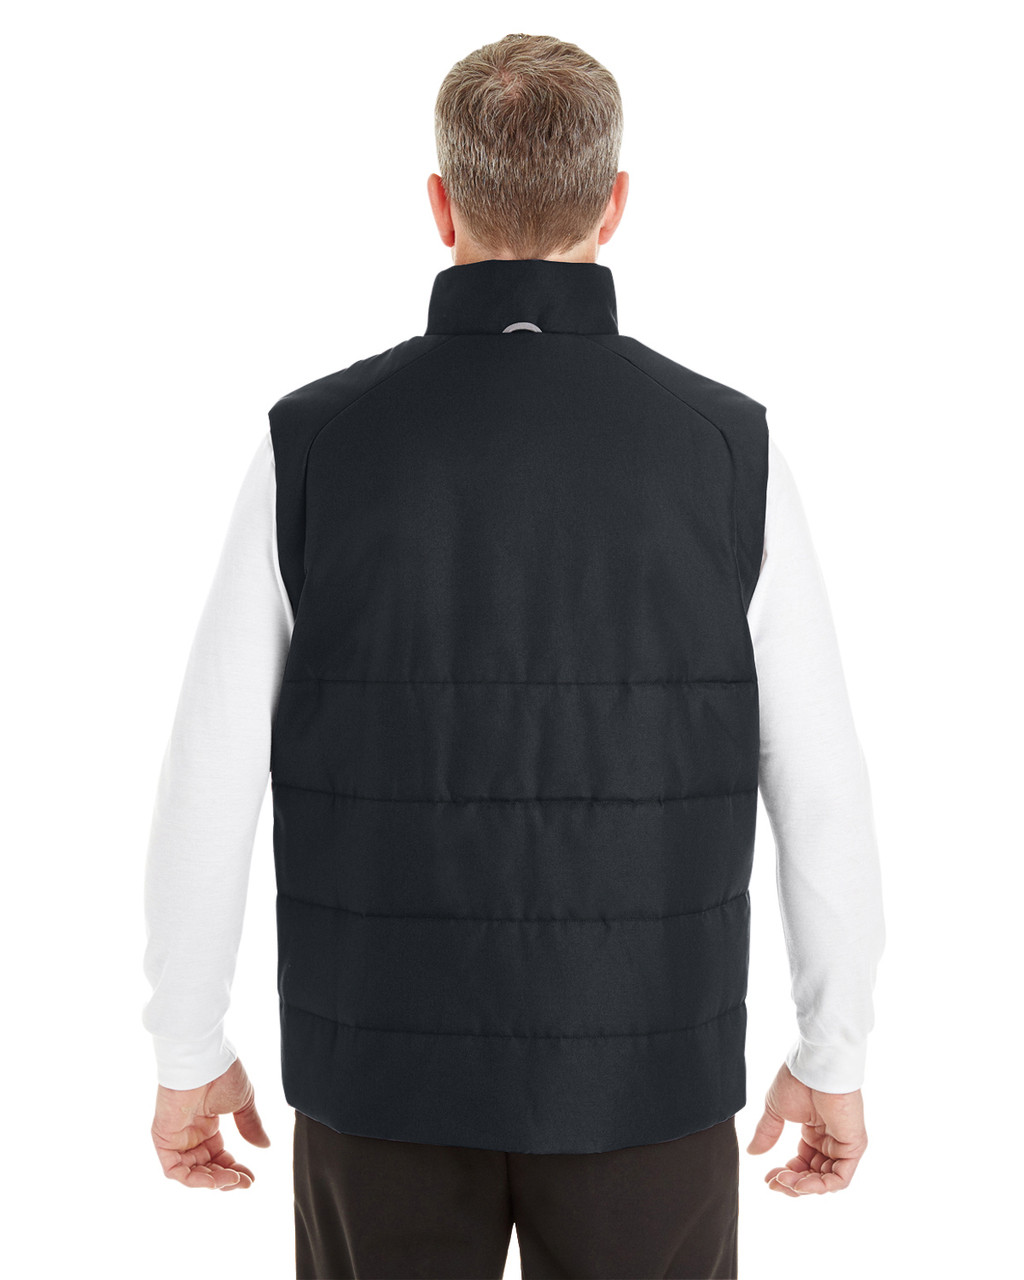 Black/Graphite - BACK - NE702 North End Men's Engage Interactive Insulated Vest | Blankclothing.ca